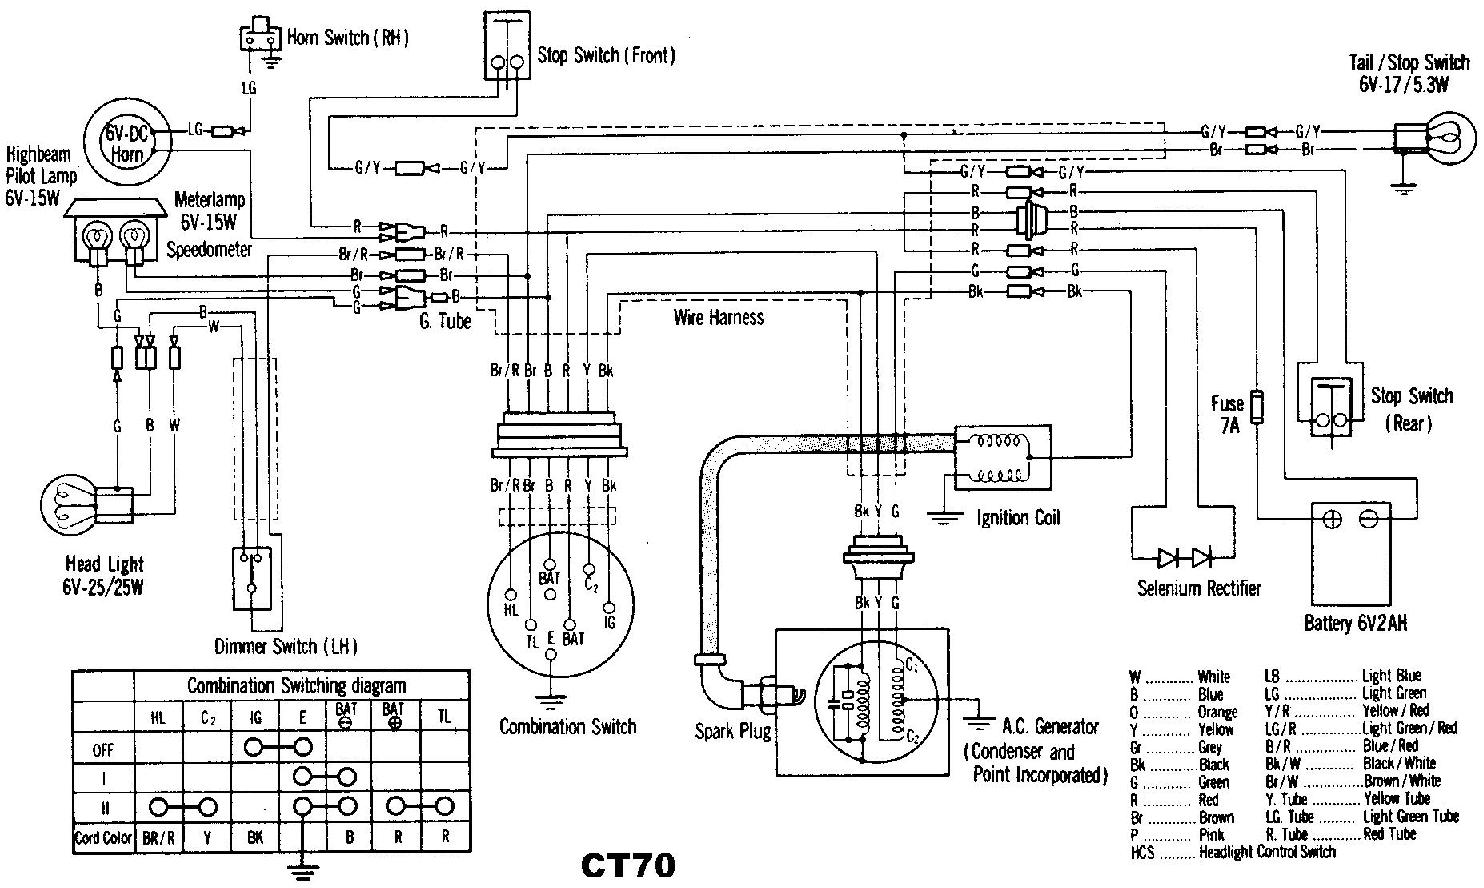 dratv_2269_123803613 ct 70 electrical issue honda c70 wiring diagram images at webbmarketing.co